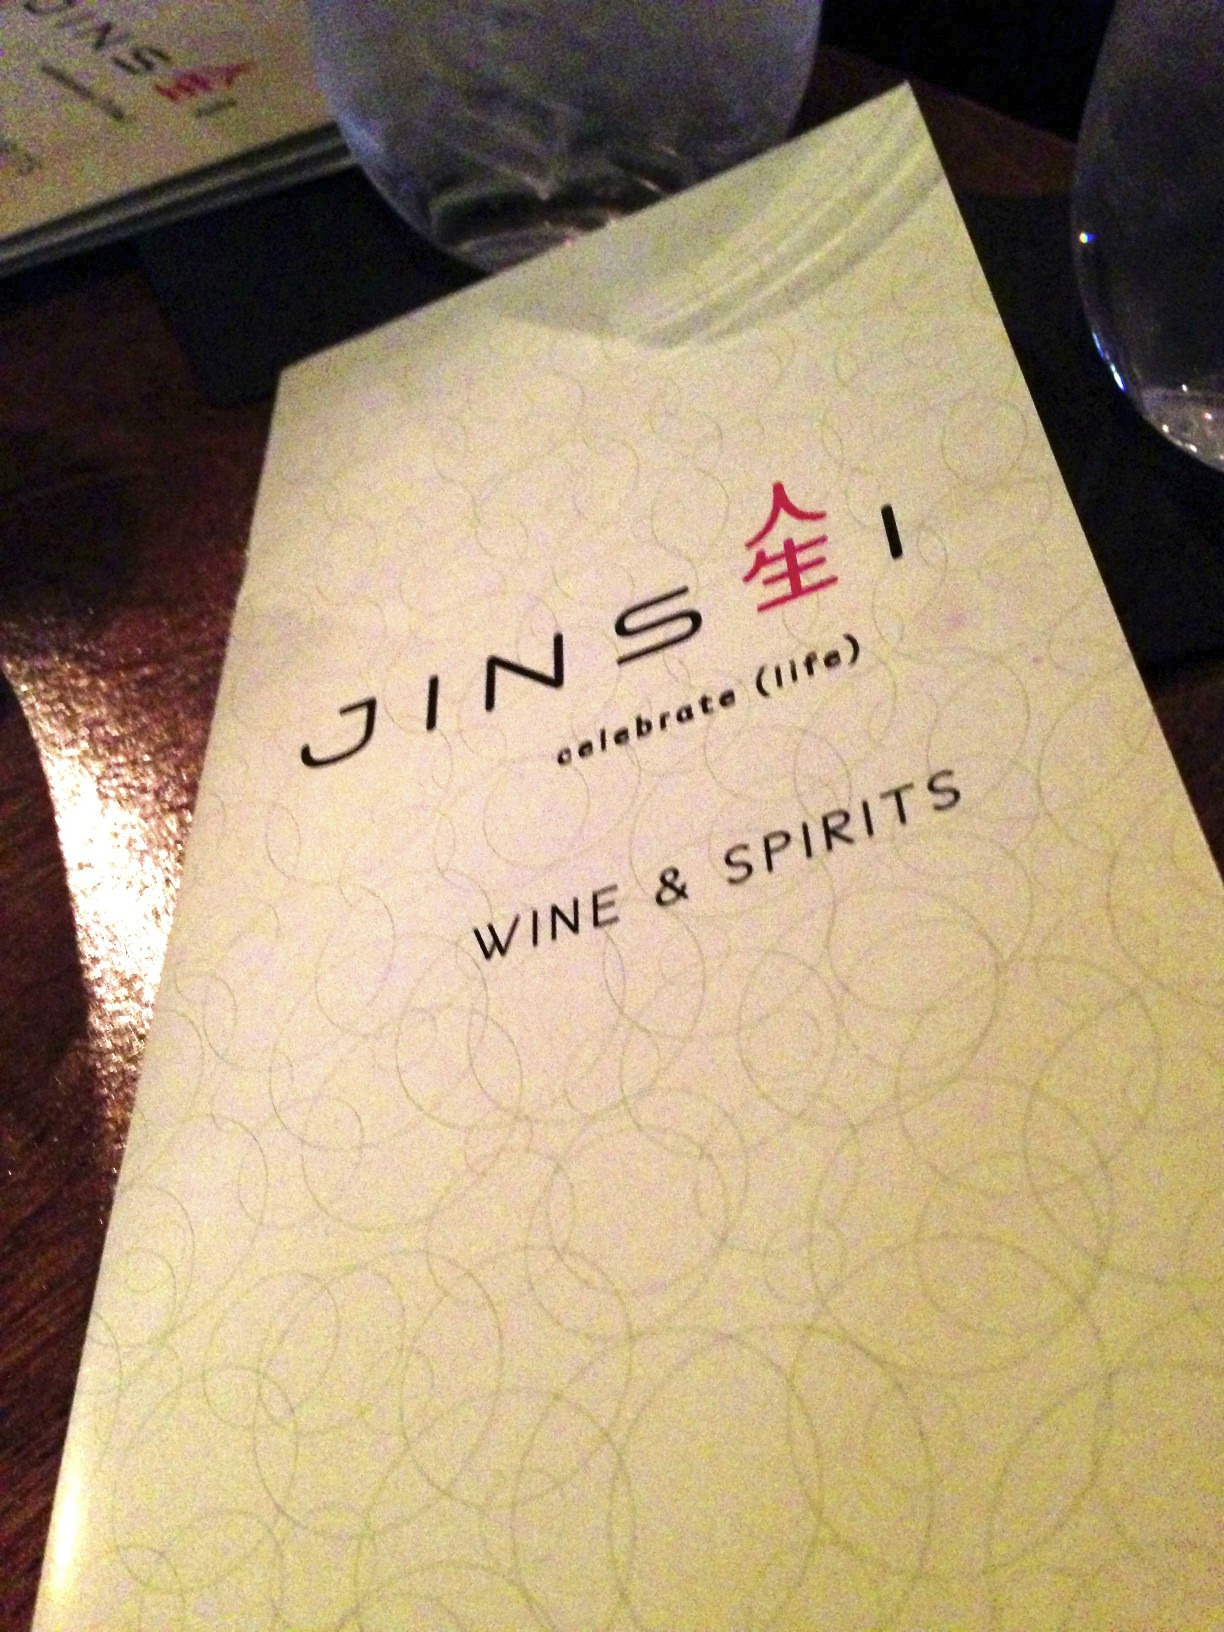 Jensai Restaurant